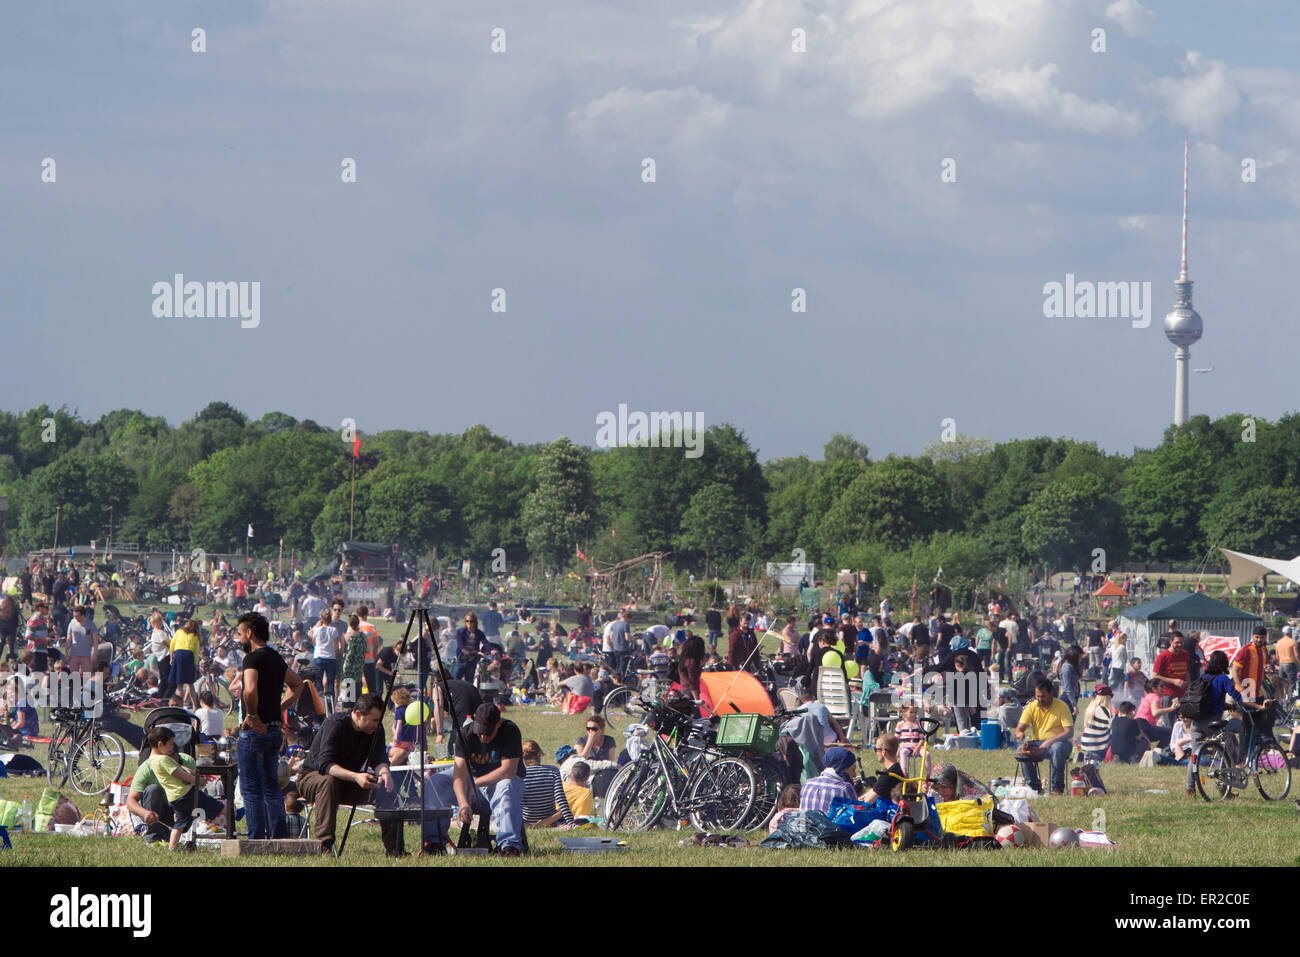 Berlin, Germany. 25th May, 2015. The barbecue area of Tempelhofer Feld is filled with people on Pentecost in Berlin, - Stock Image